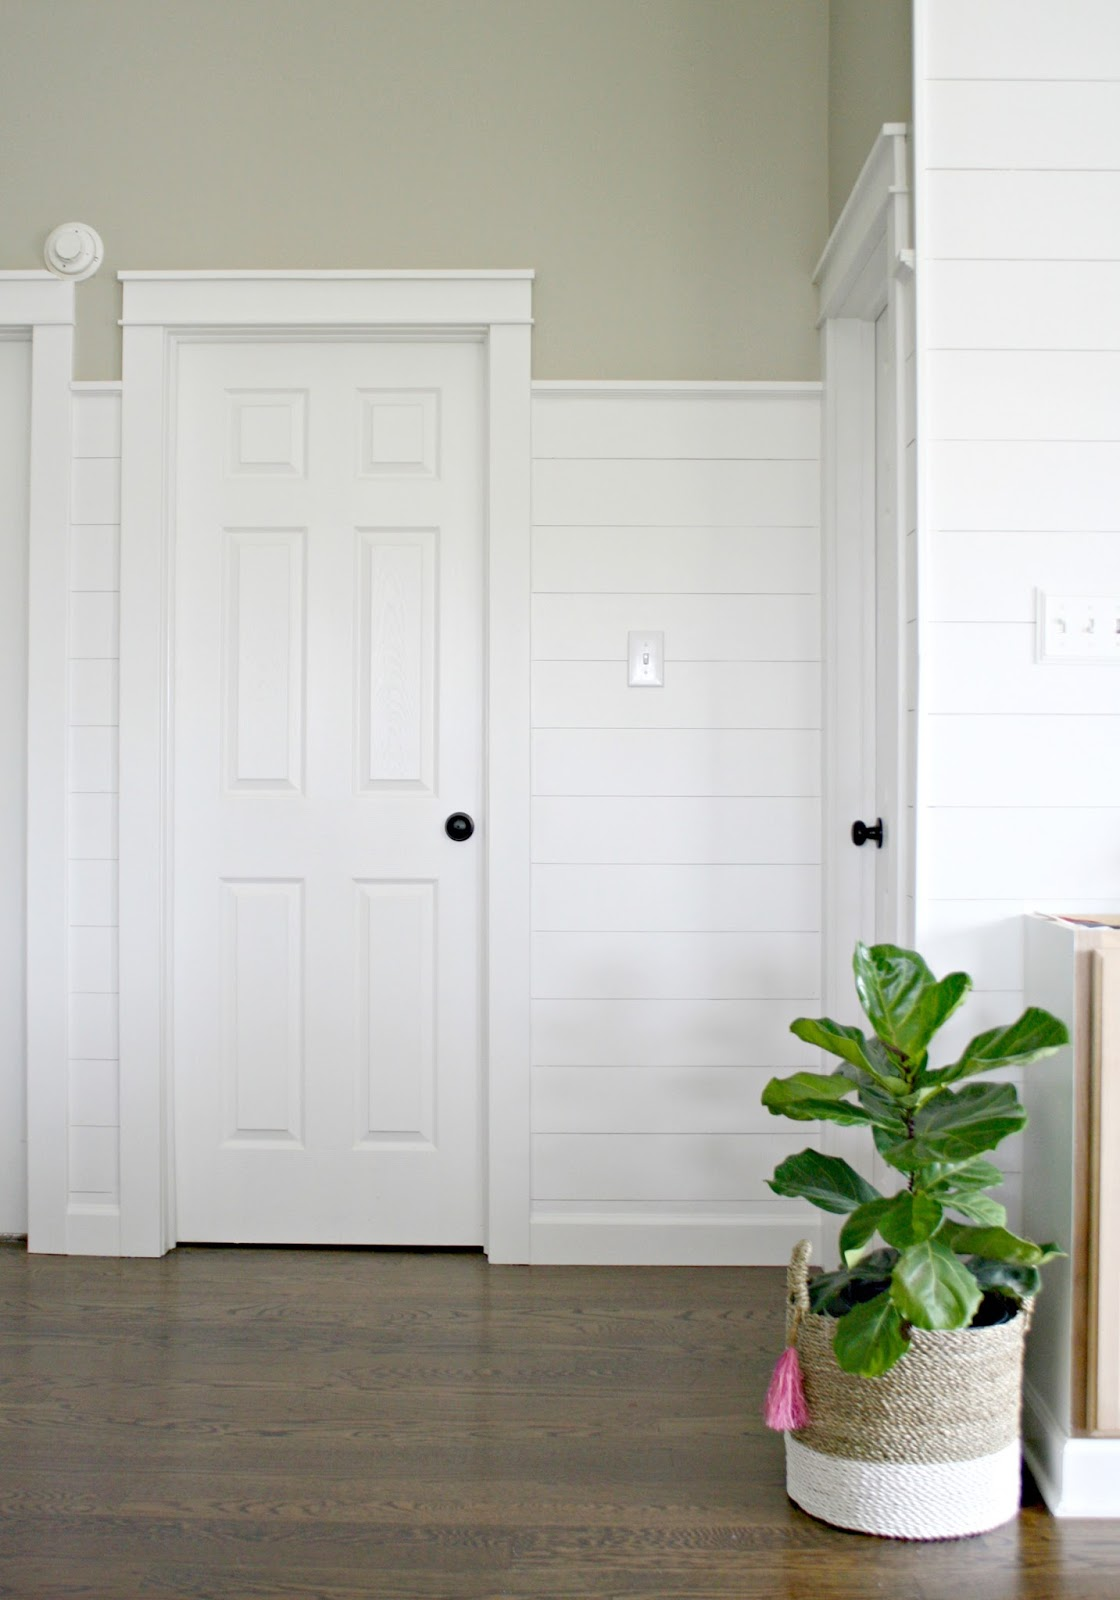 Delicieux White Shiplap Walls With Chunky Door Trim